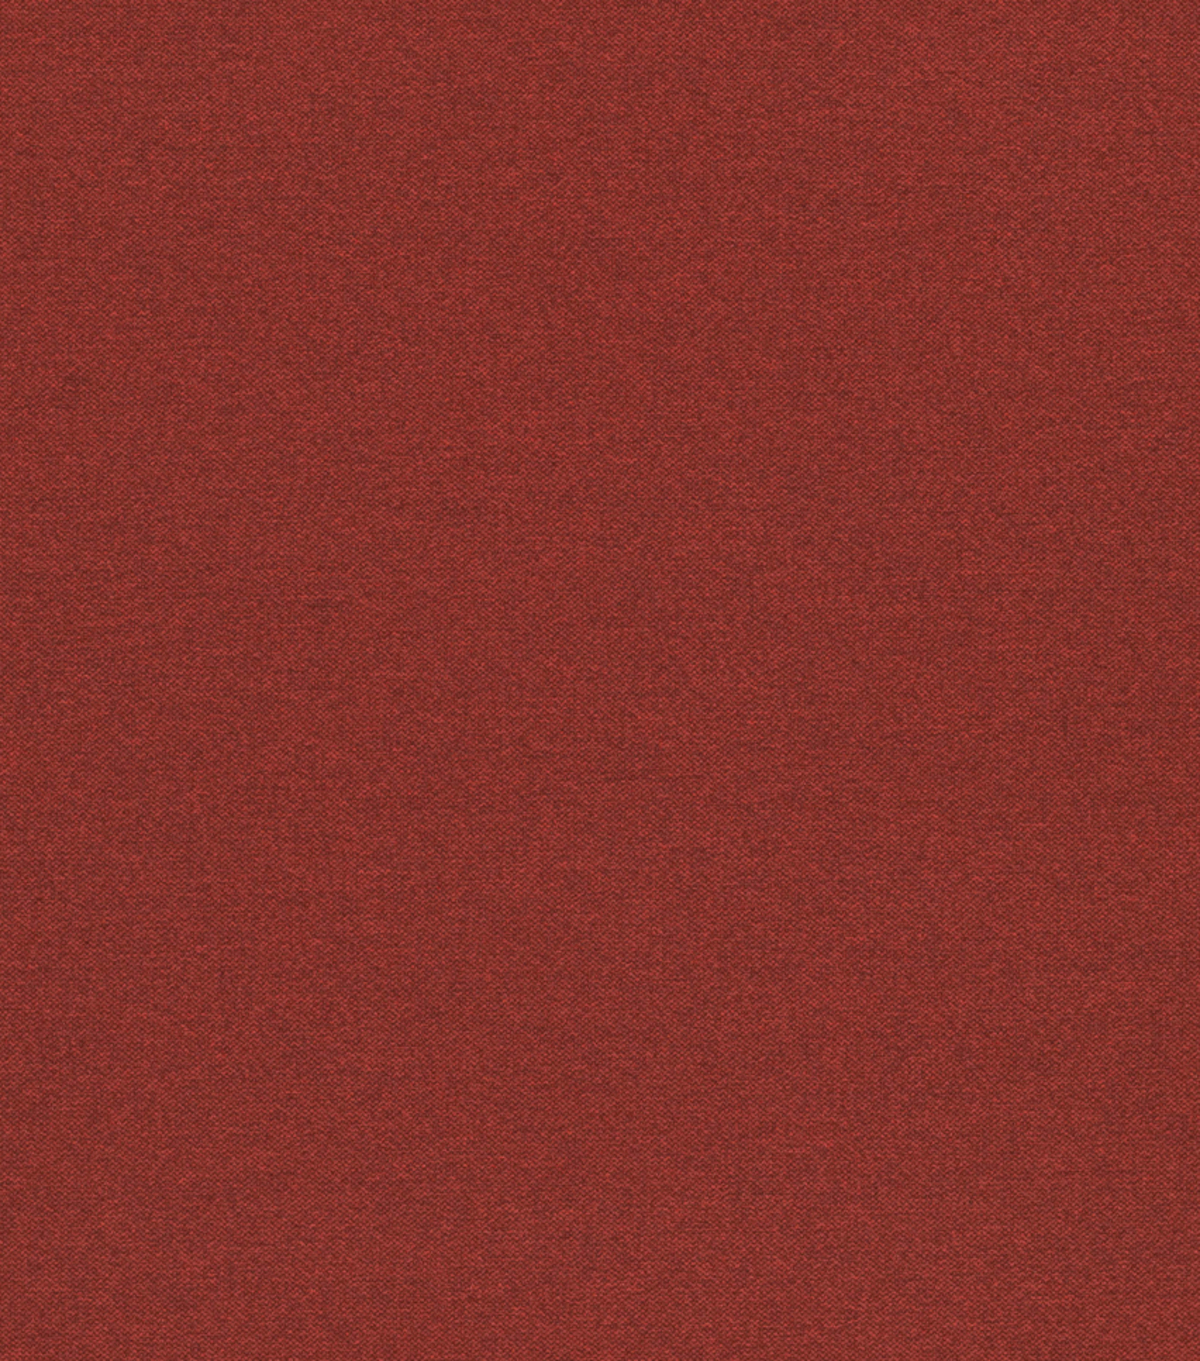 Home Decor 8\u0022x8\u0022 Fabric Swatch-Charlotte Ruby